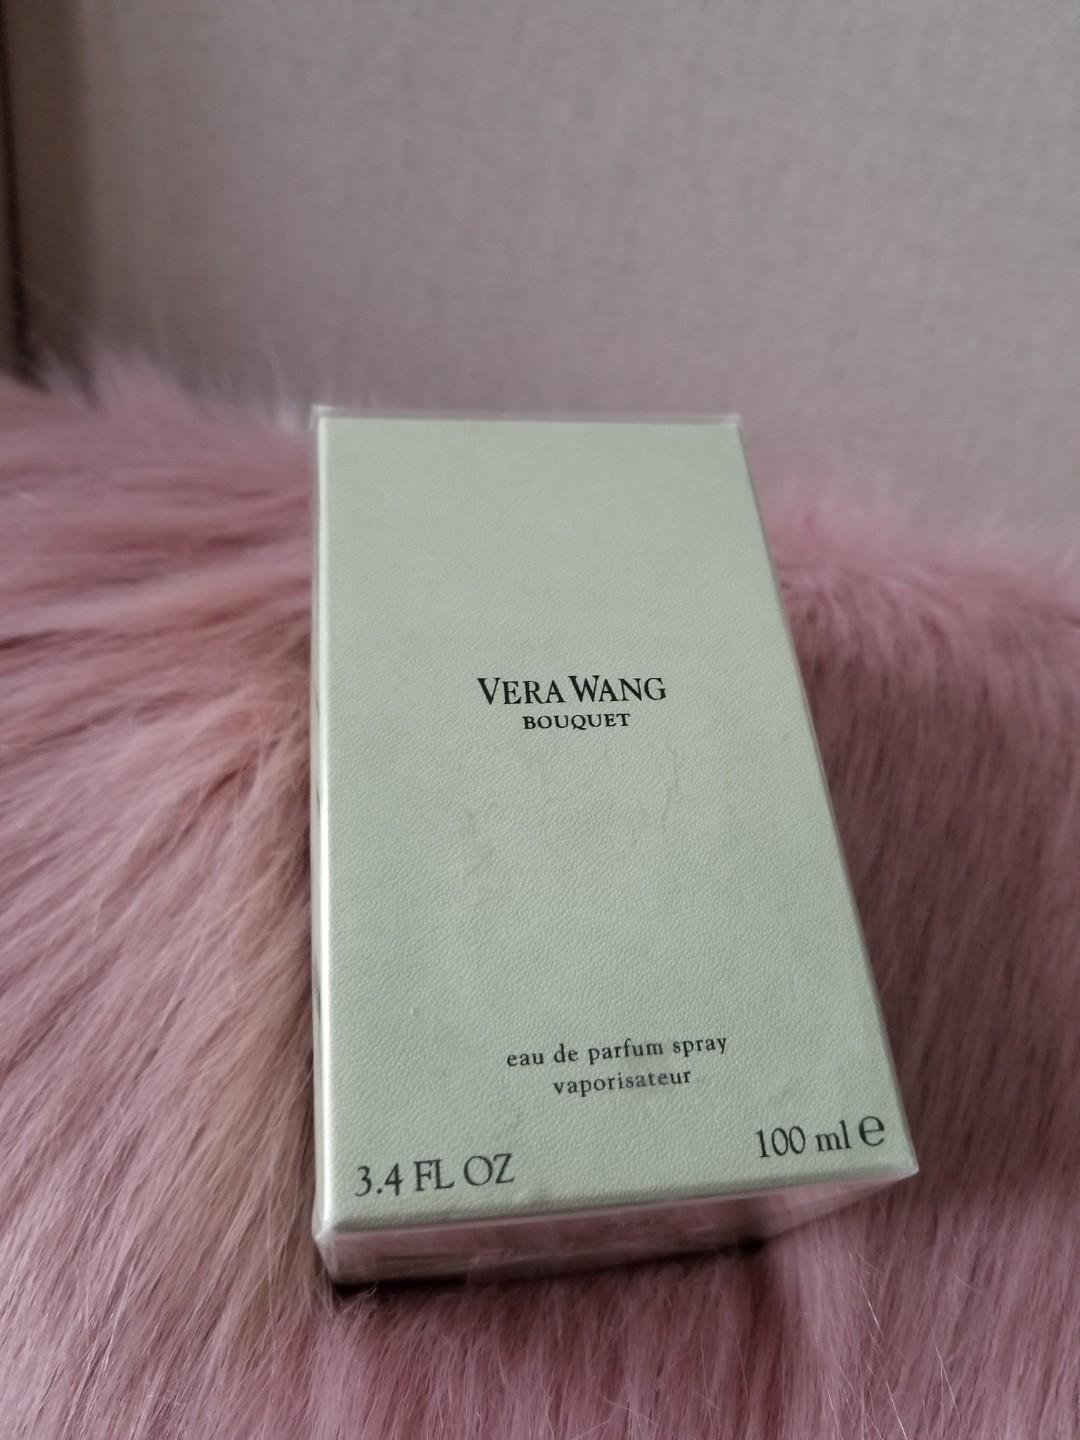 VERA WANG Bouquet Eau du Parfum Spray 100 ml